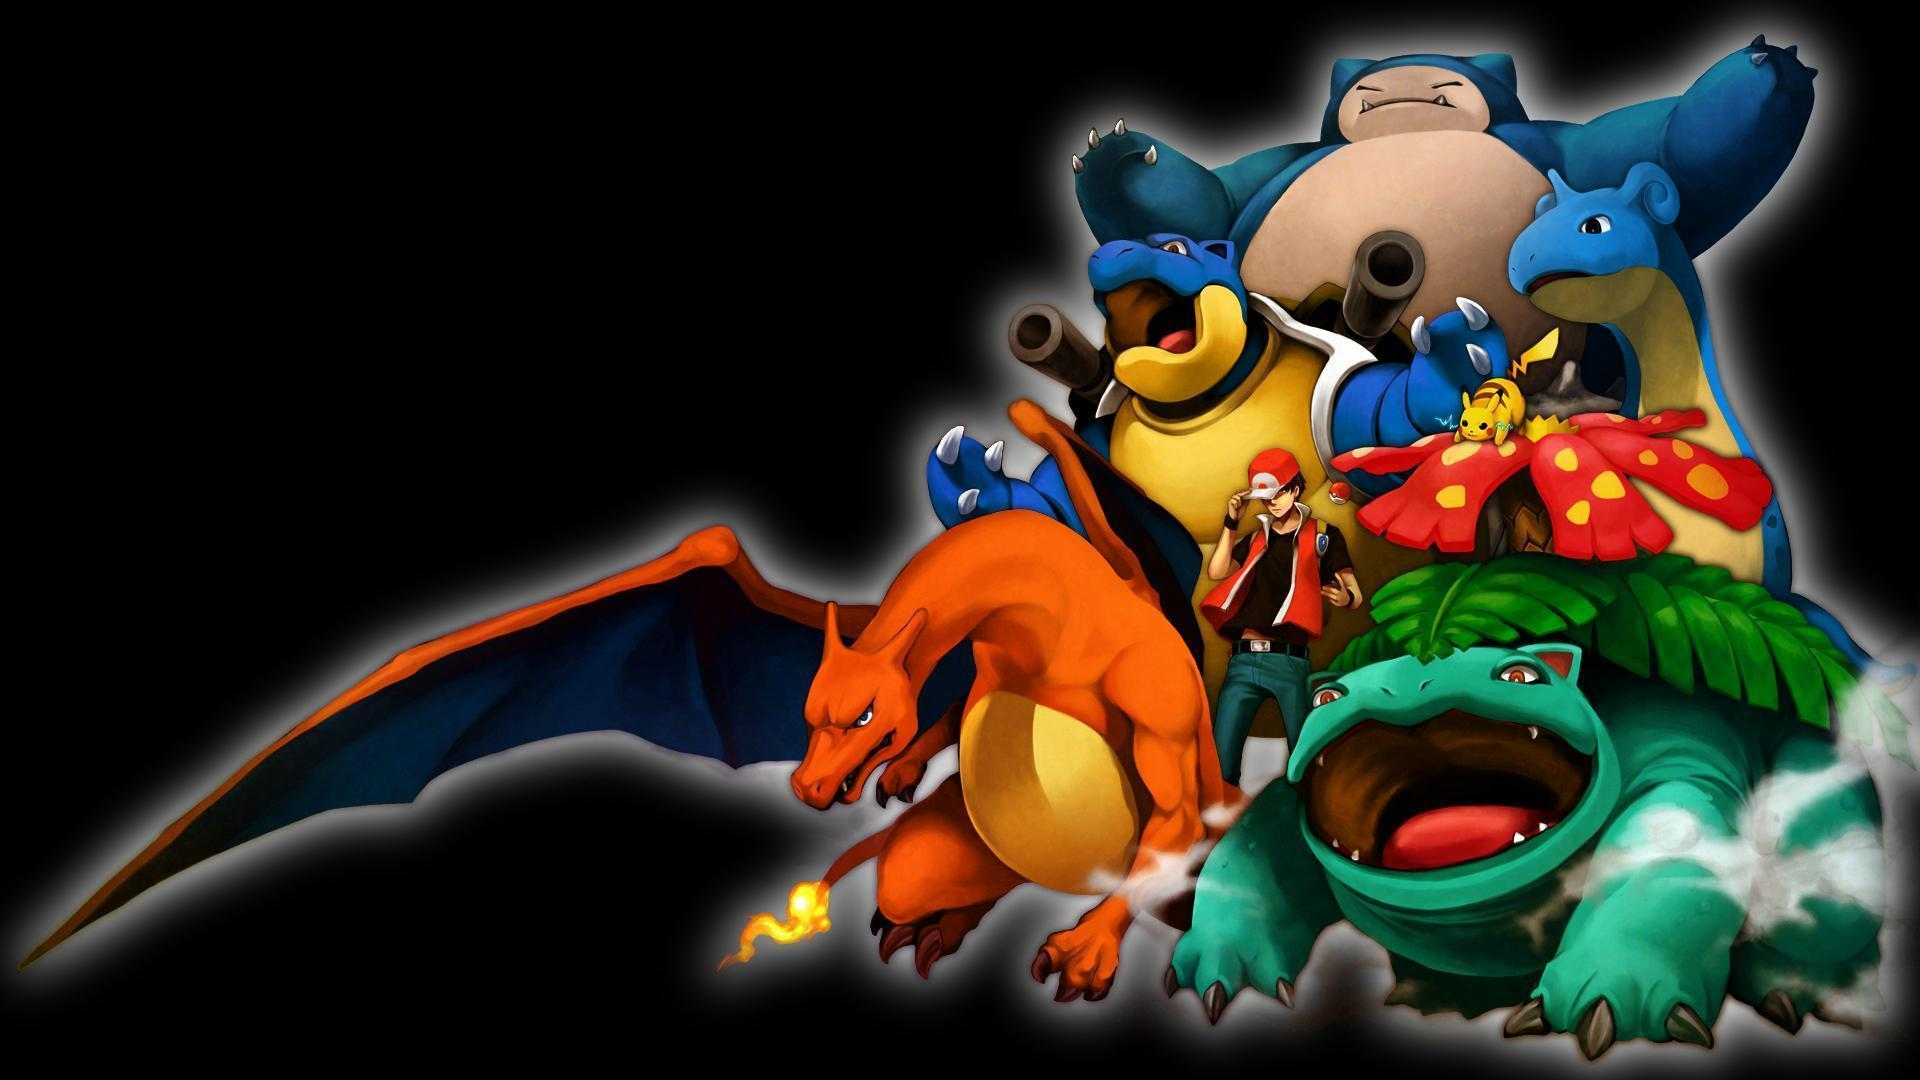 Pokemon Wallpapers 1920x1080 - Wallpaper Cave Pokemon Wallpaper Hd 1920x1080